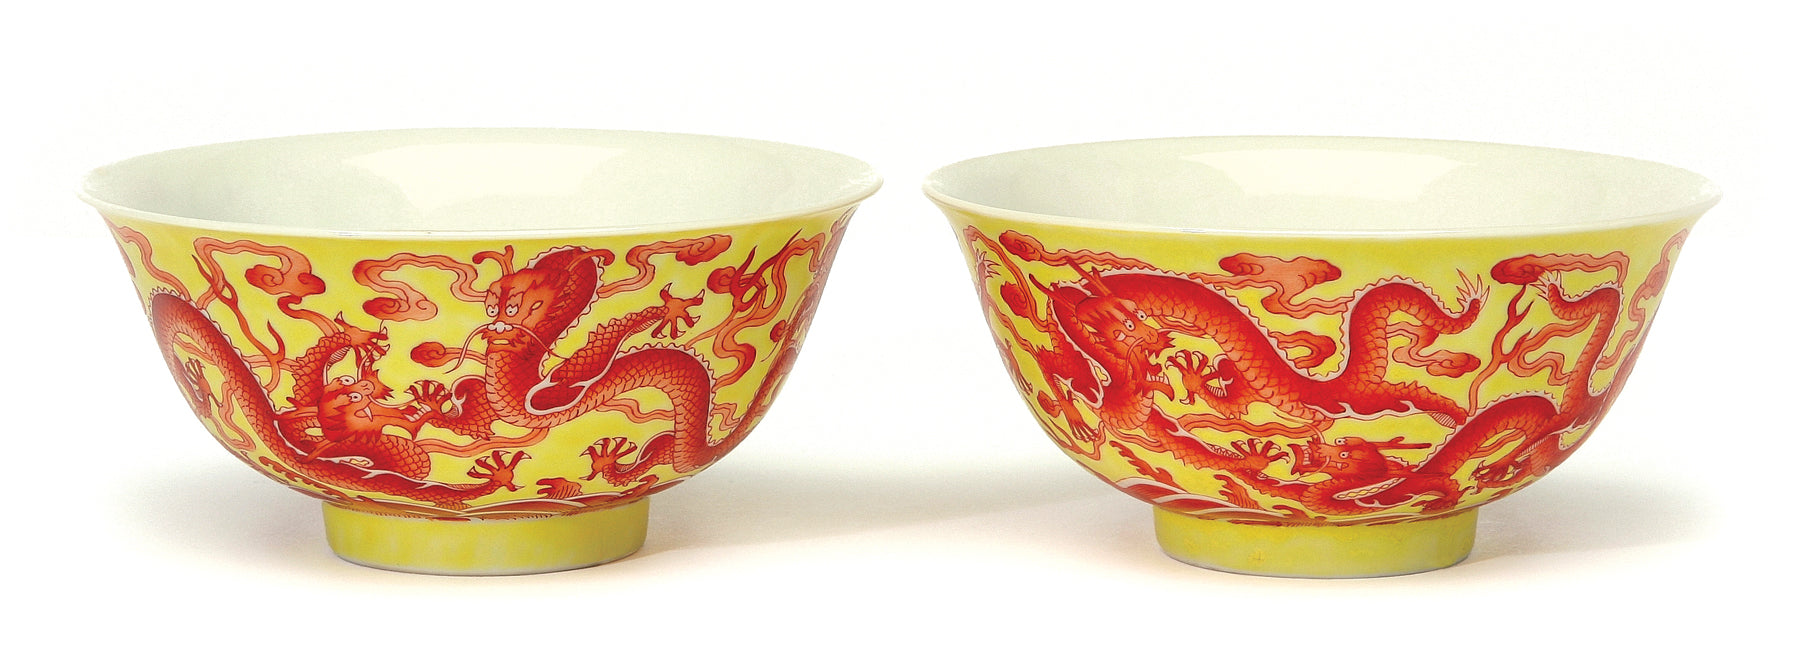 Chinese Yellow Bowls